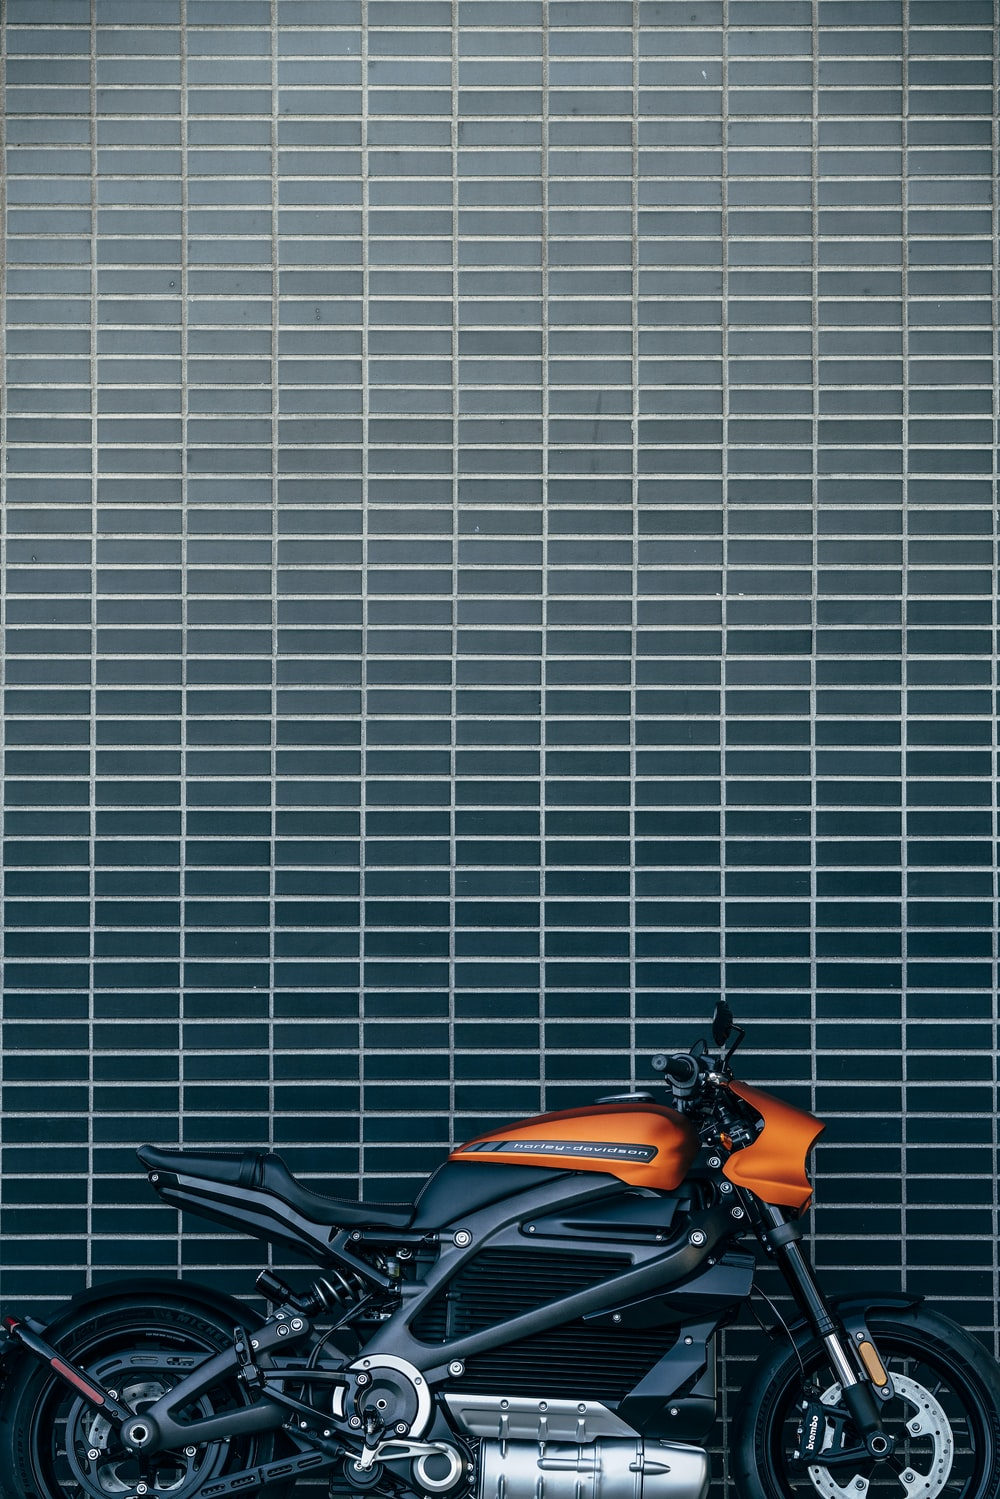 Car And Bike Pictures Download Free Images On Unsplash